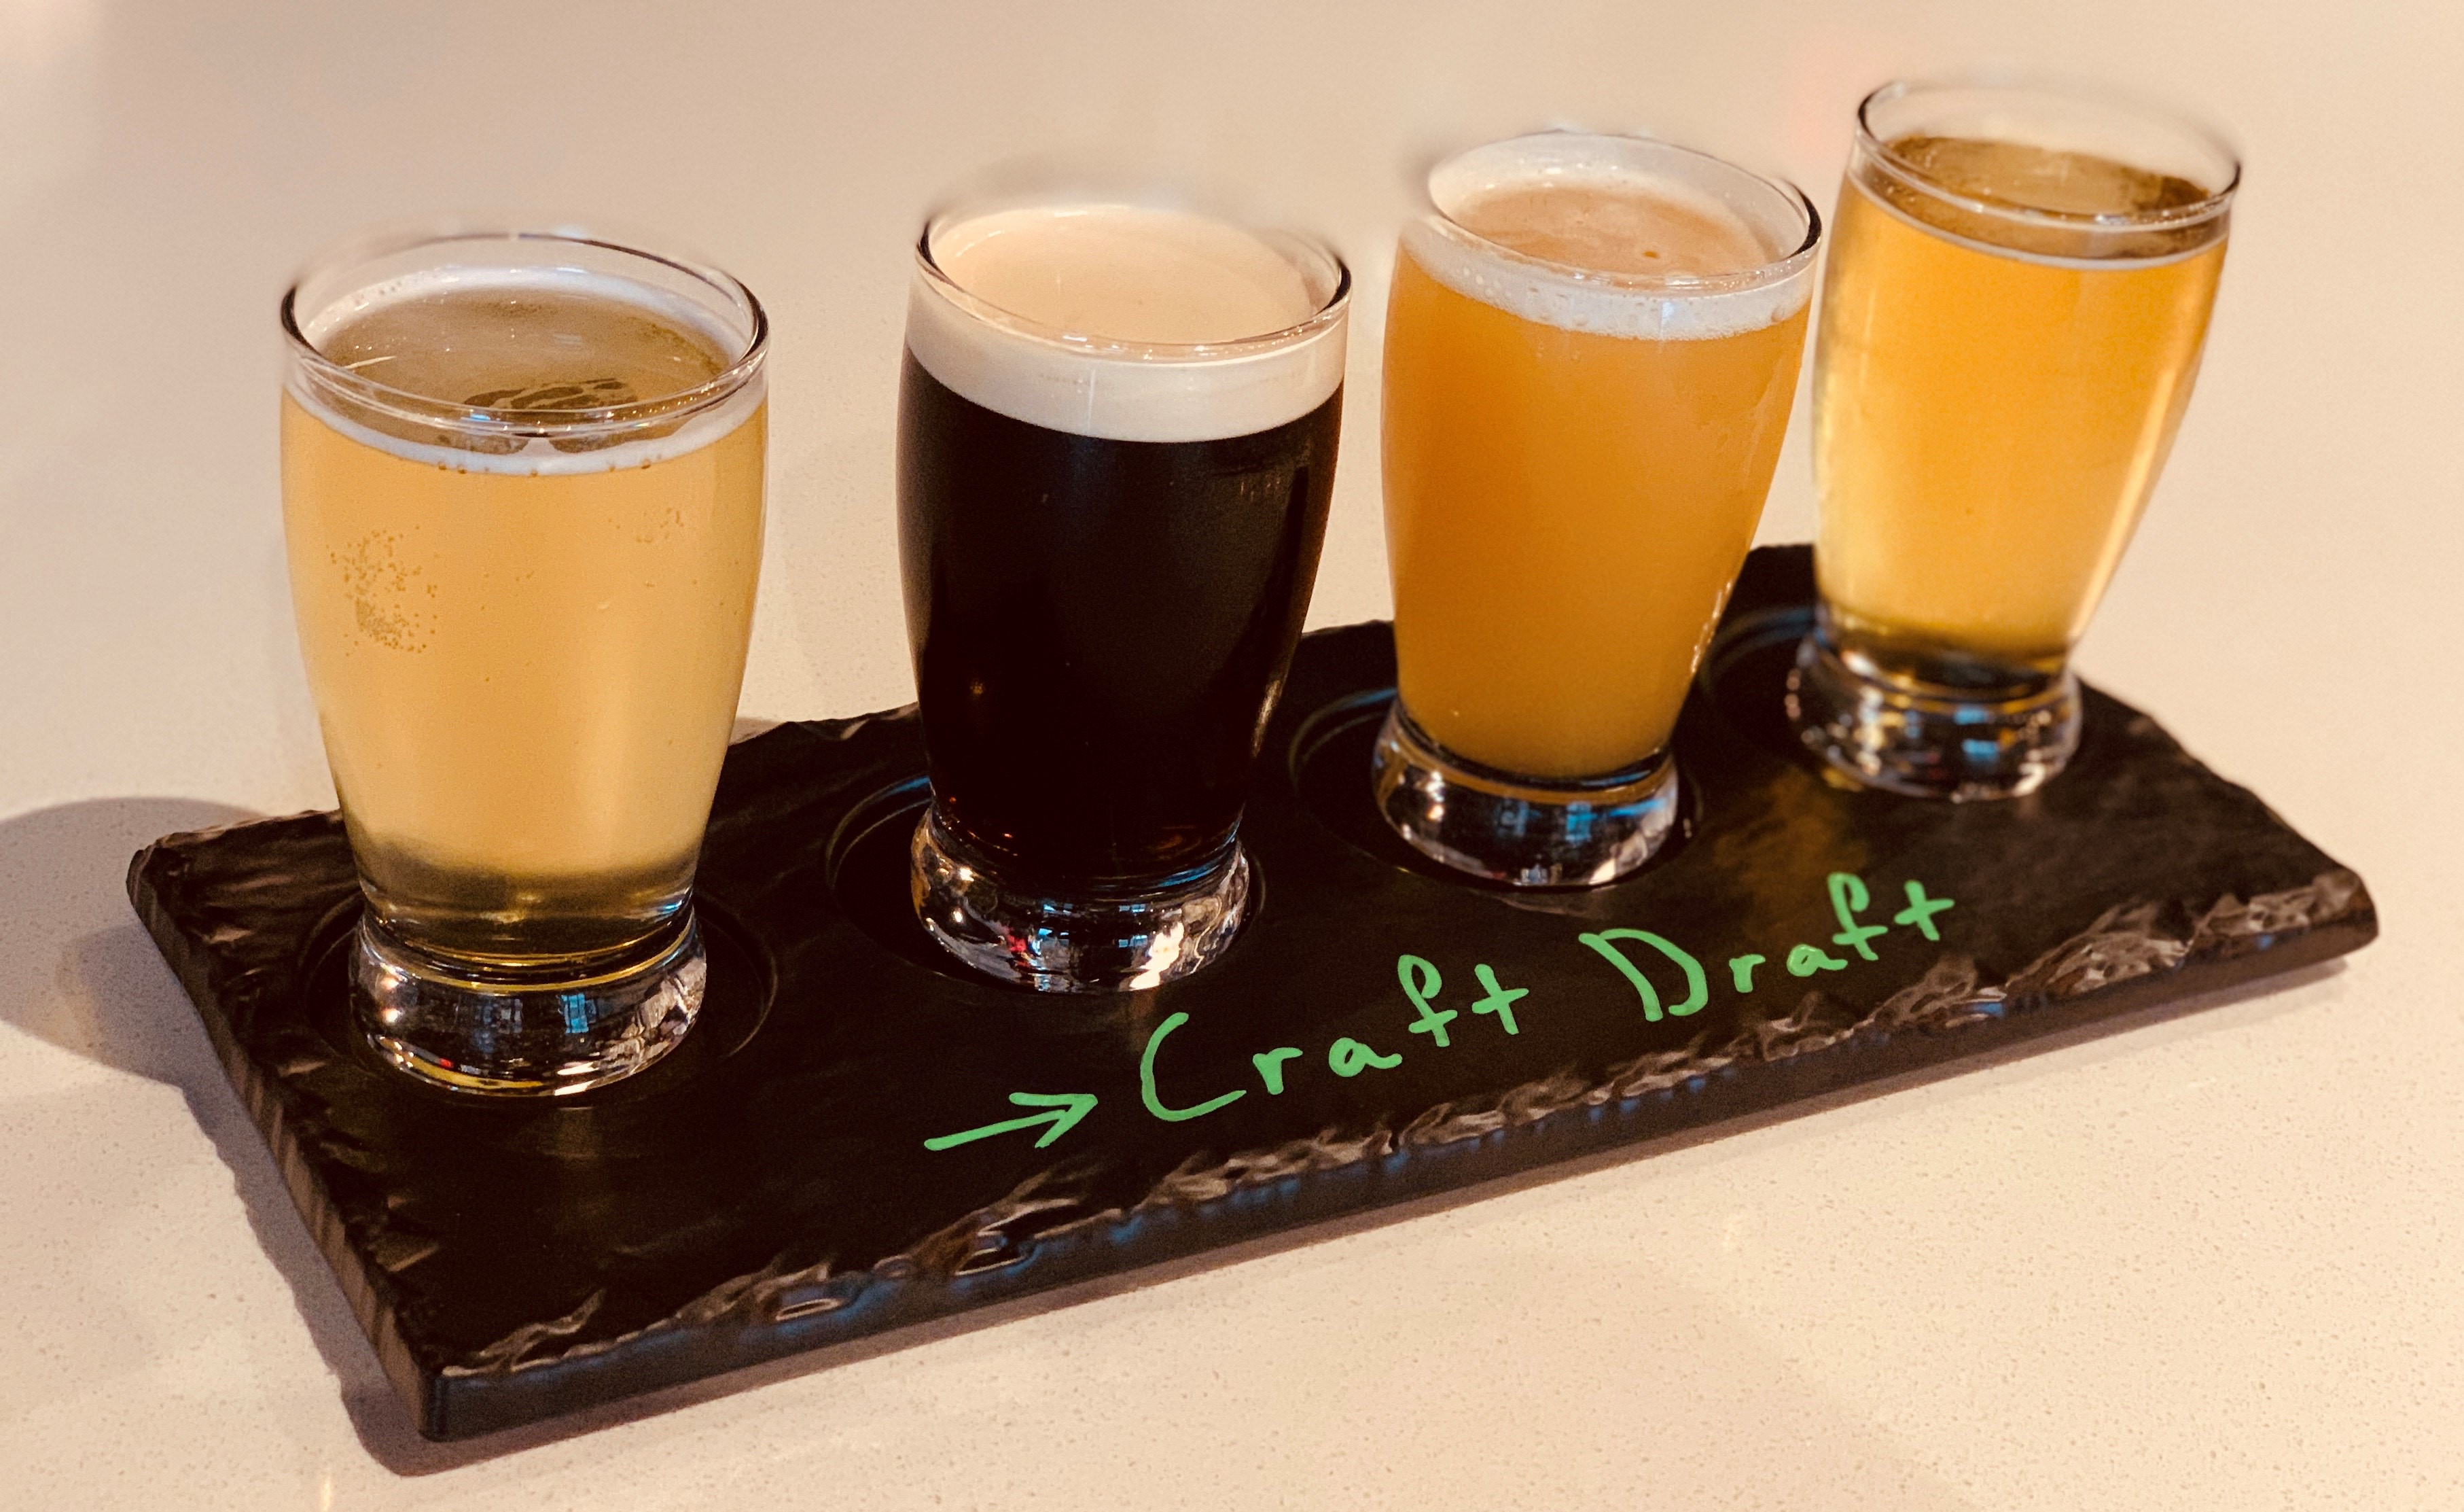 Craft_Draft_Flight